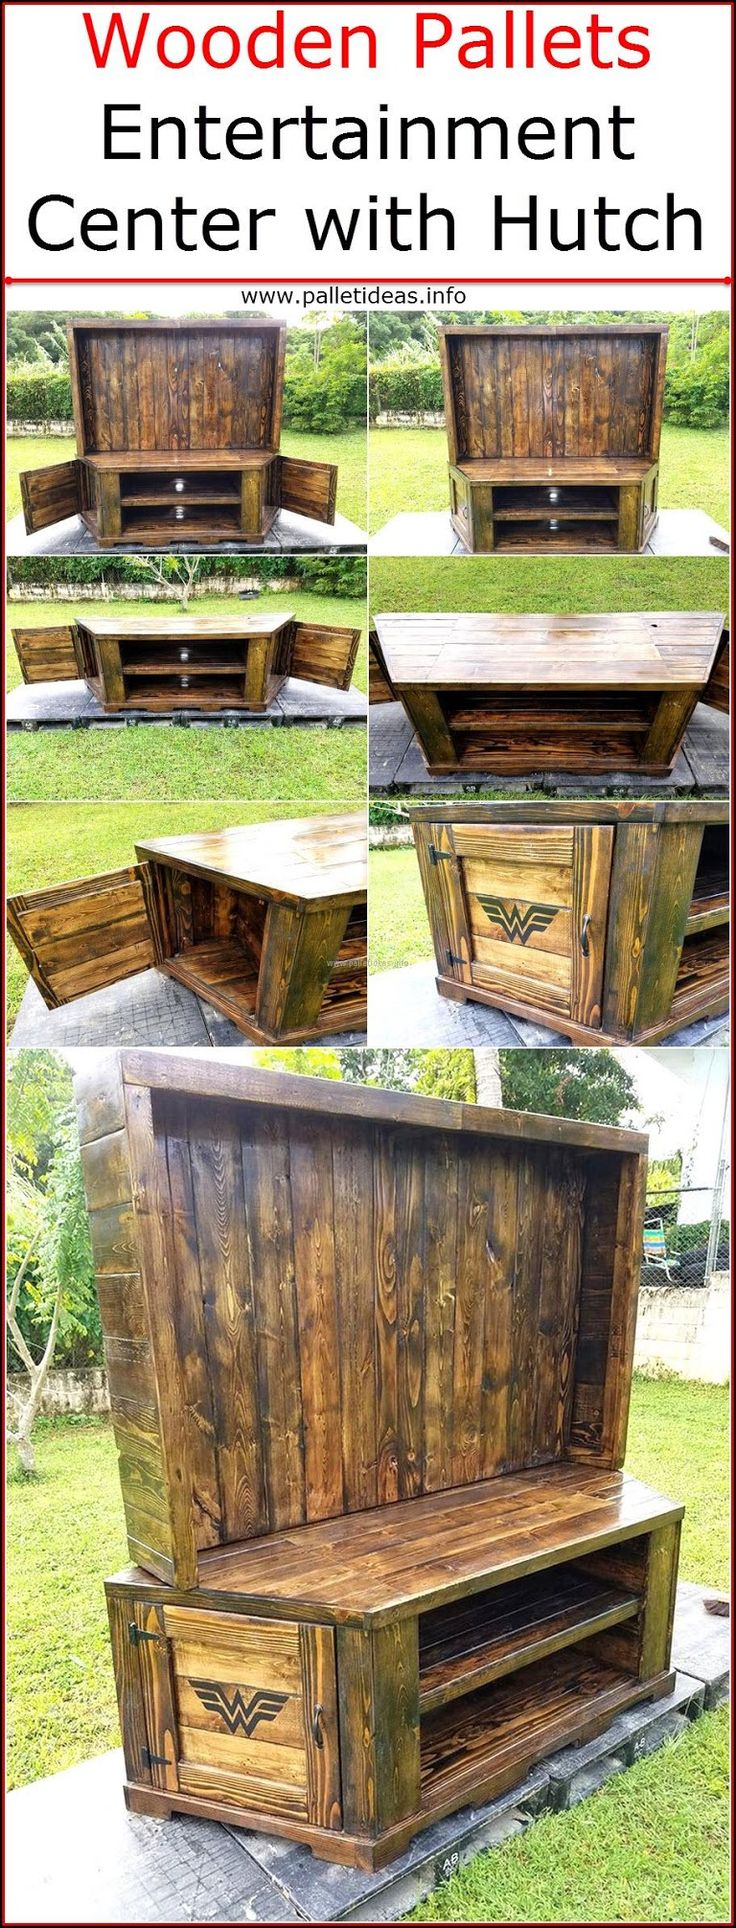 wooden-pallets-entertainment-center-with-hutch